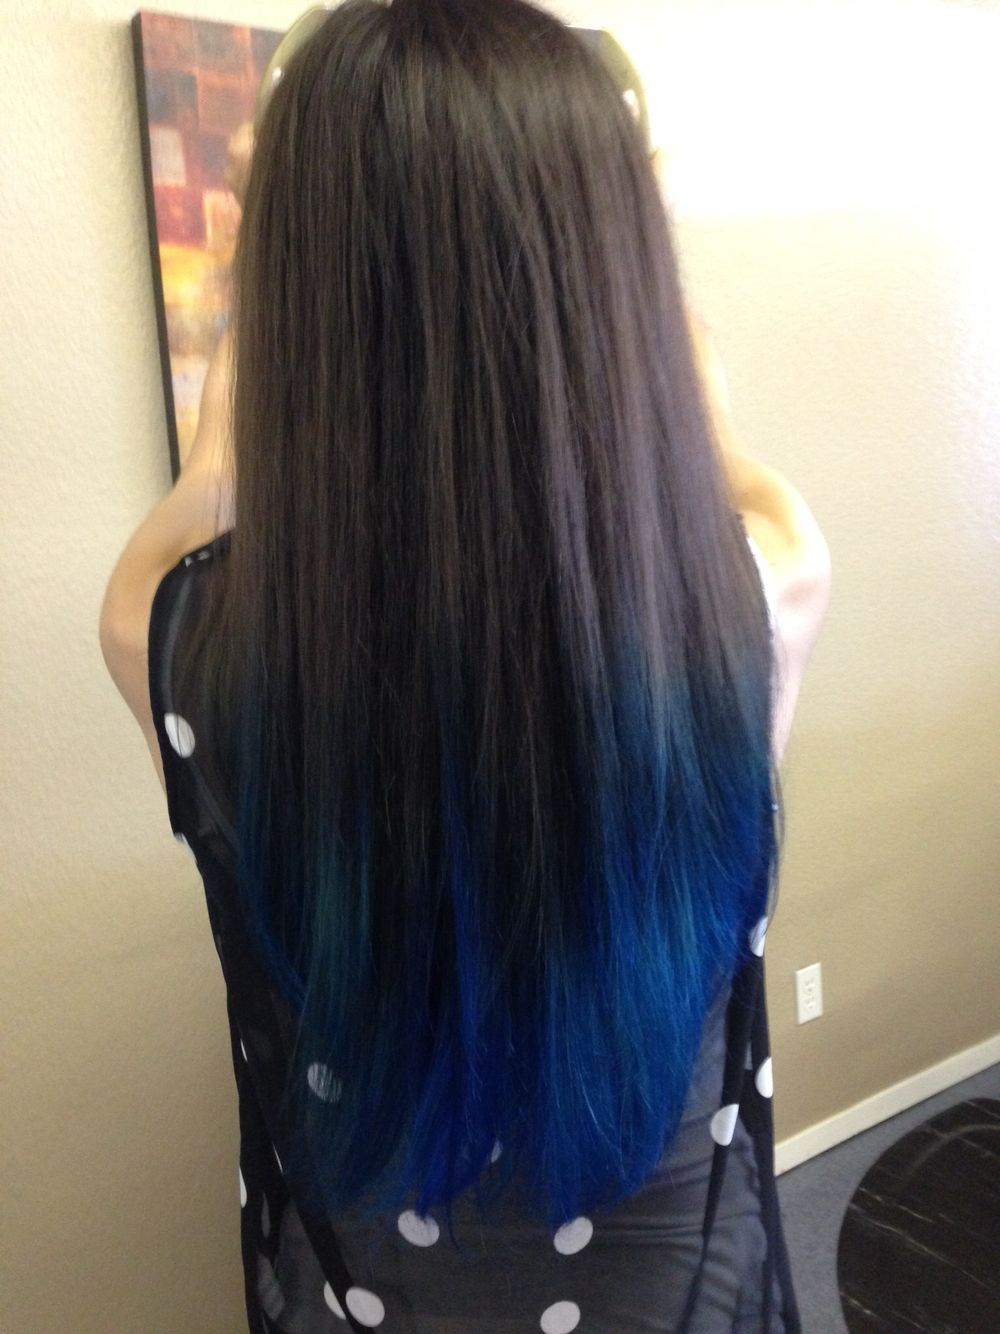 20 ombre blue colors hairstyles ideas   hairstyles   dyed